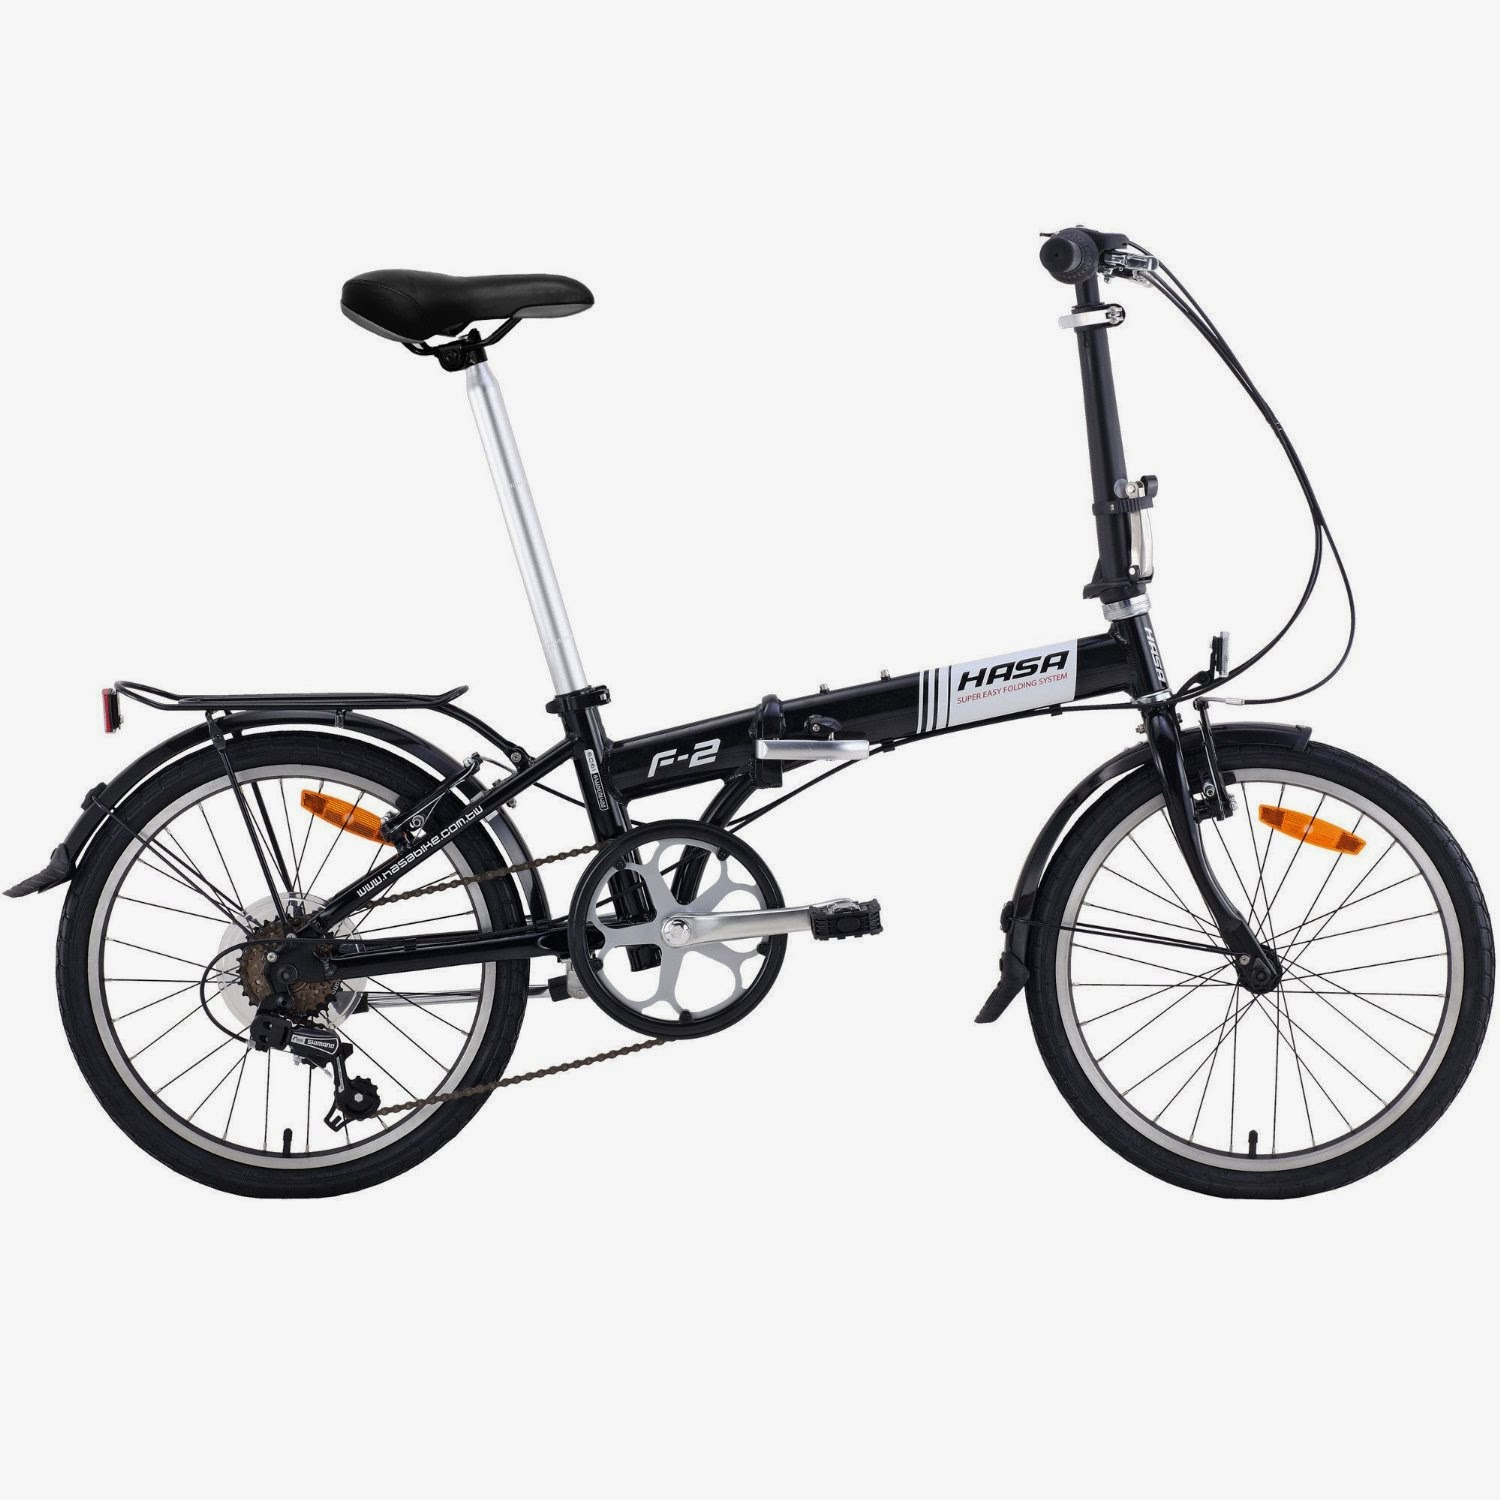 Bikes Online For A Good Price Hasa Folding Foldable Bike